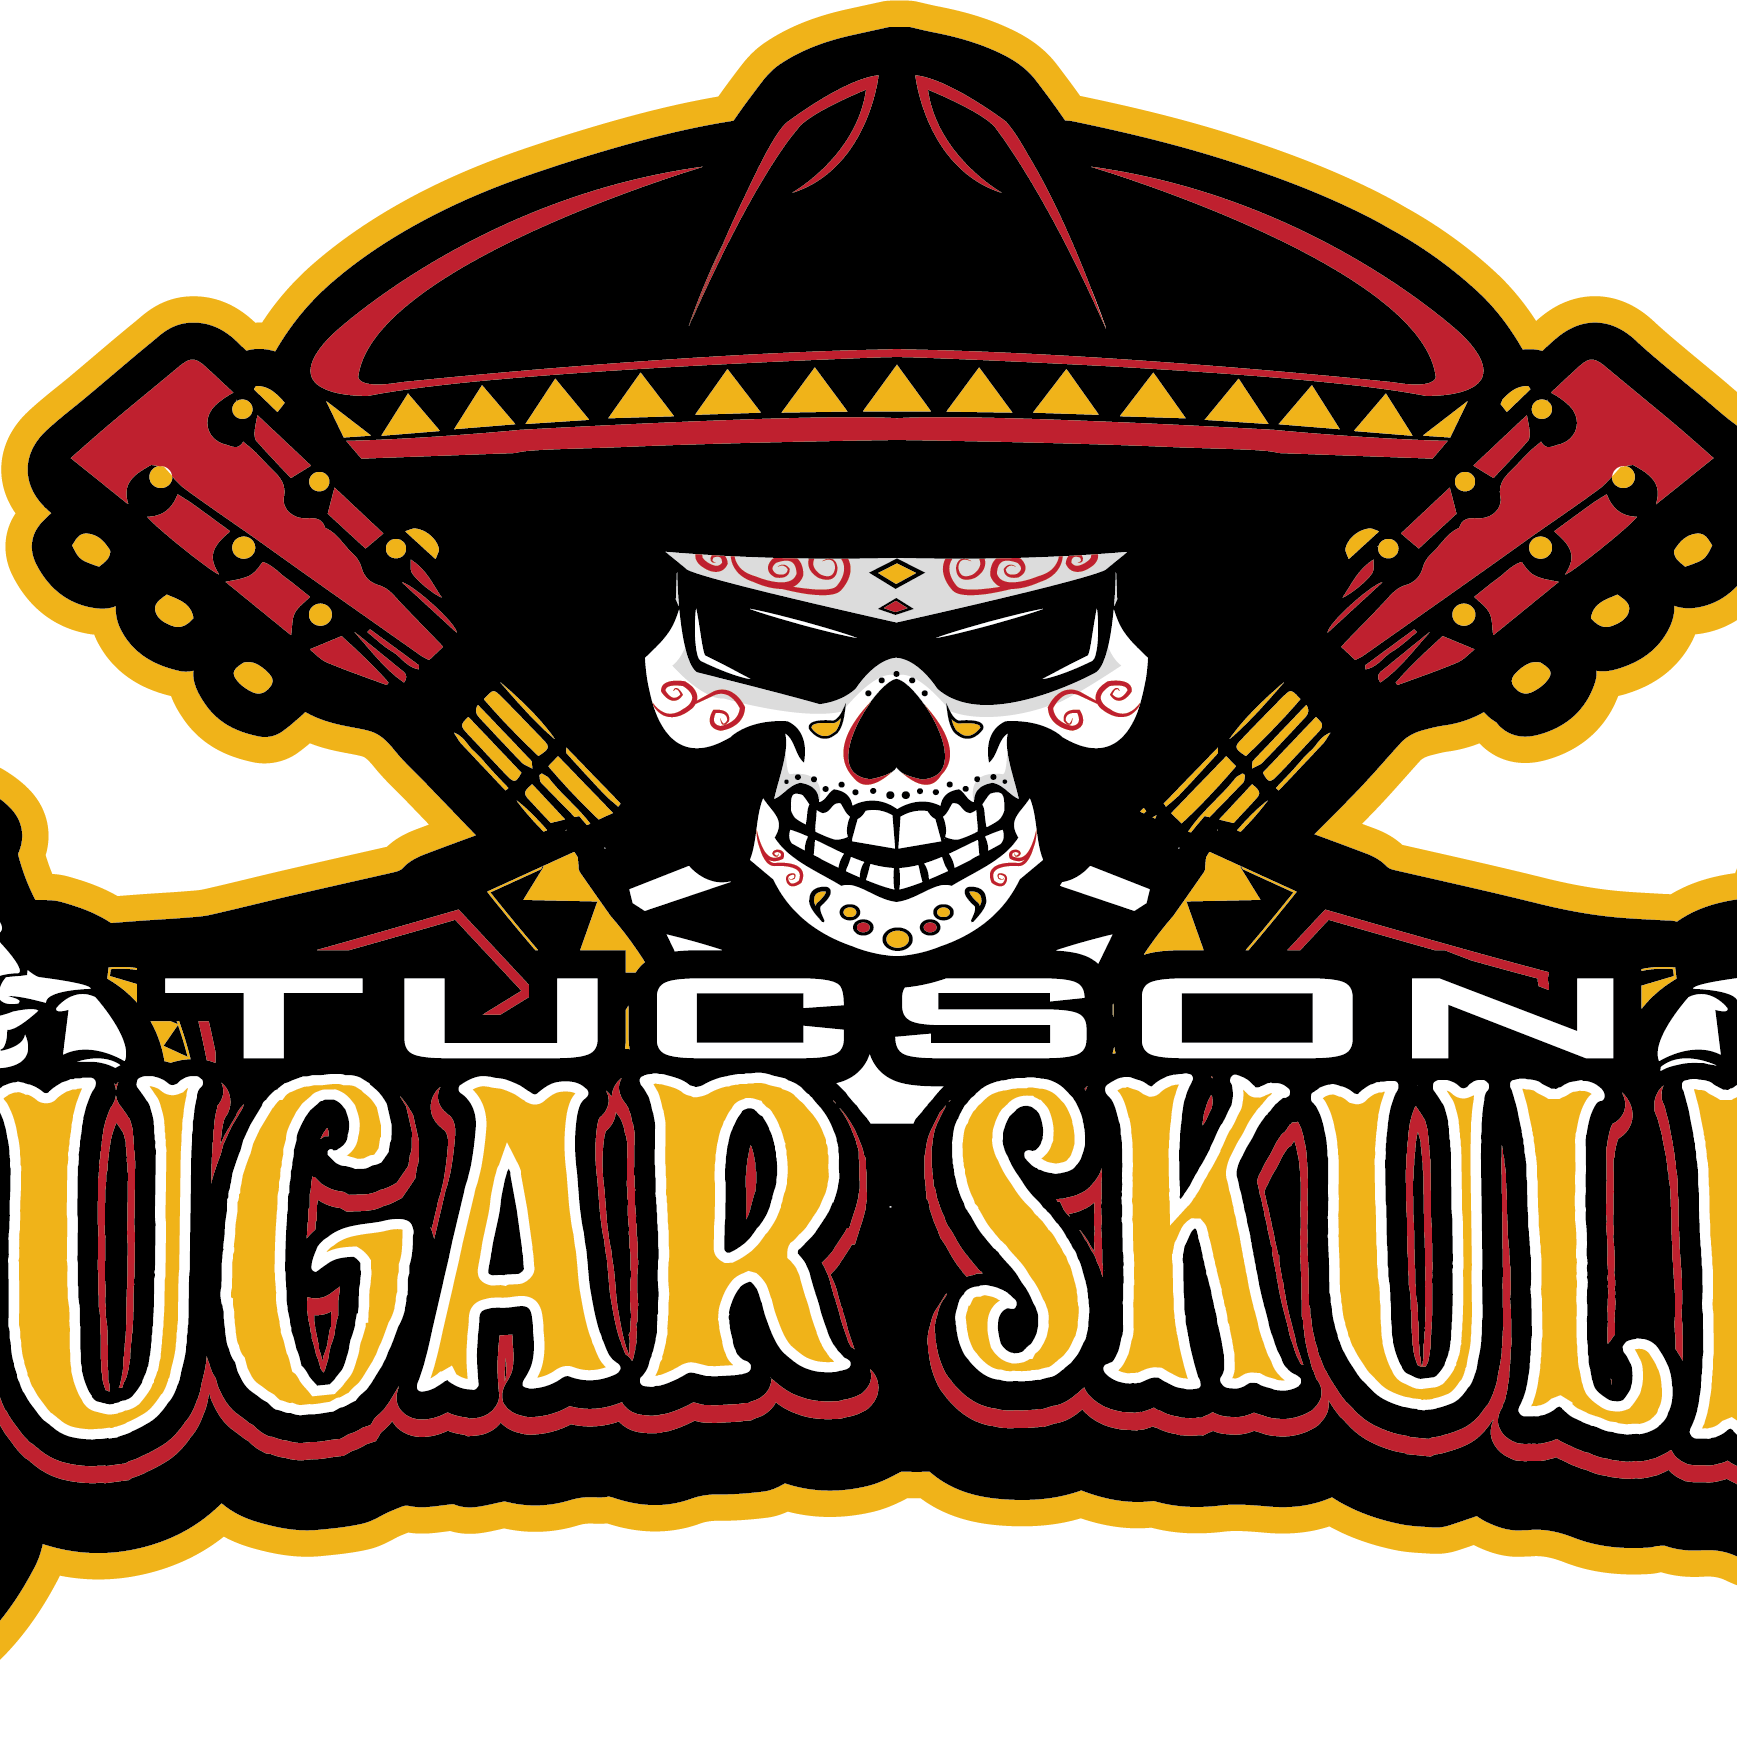 Tucson Sugar Skulls: New Tucson professional football team's name draws mixed reaction